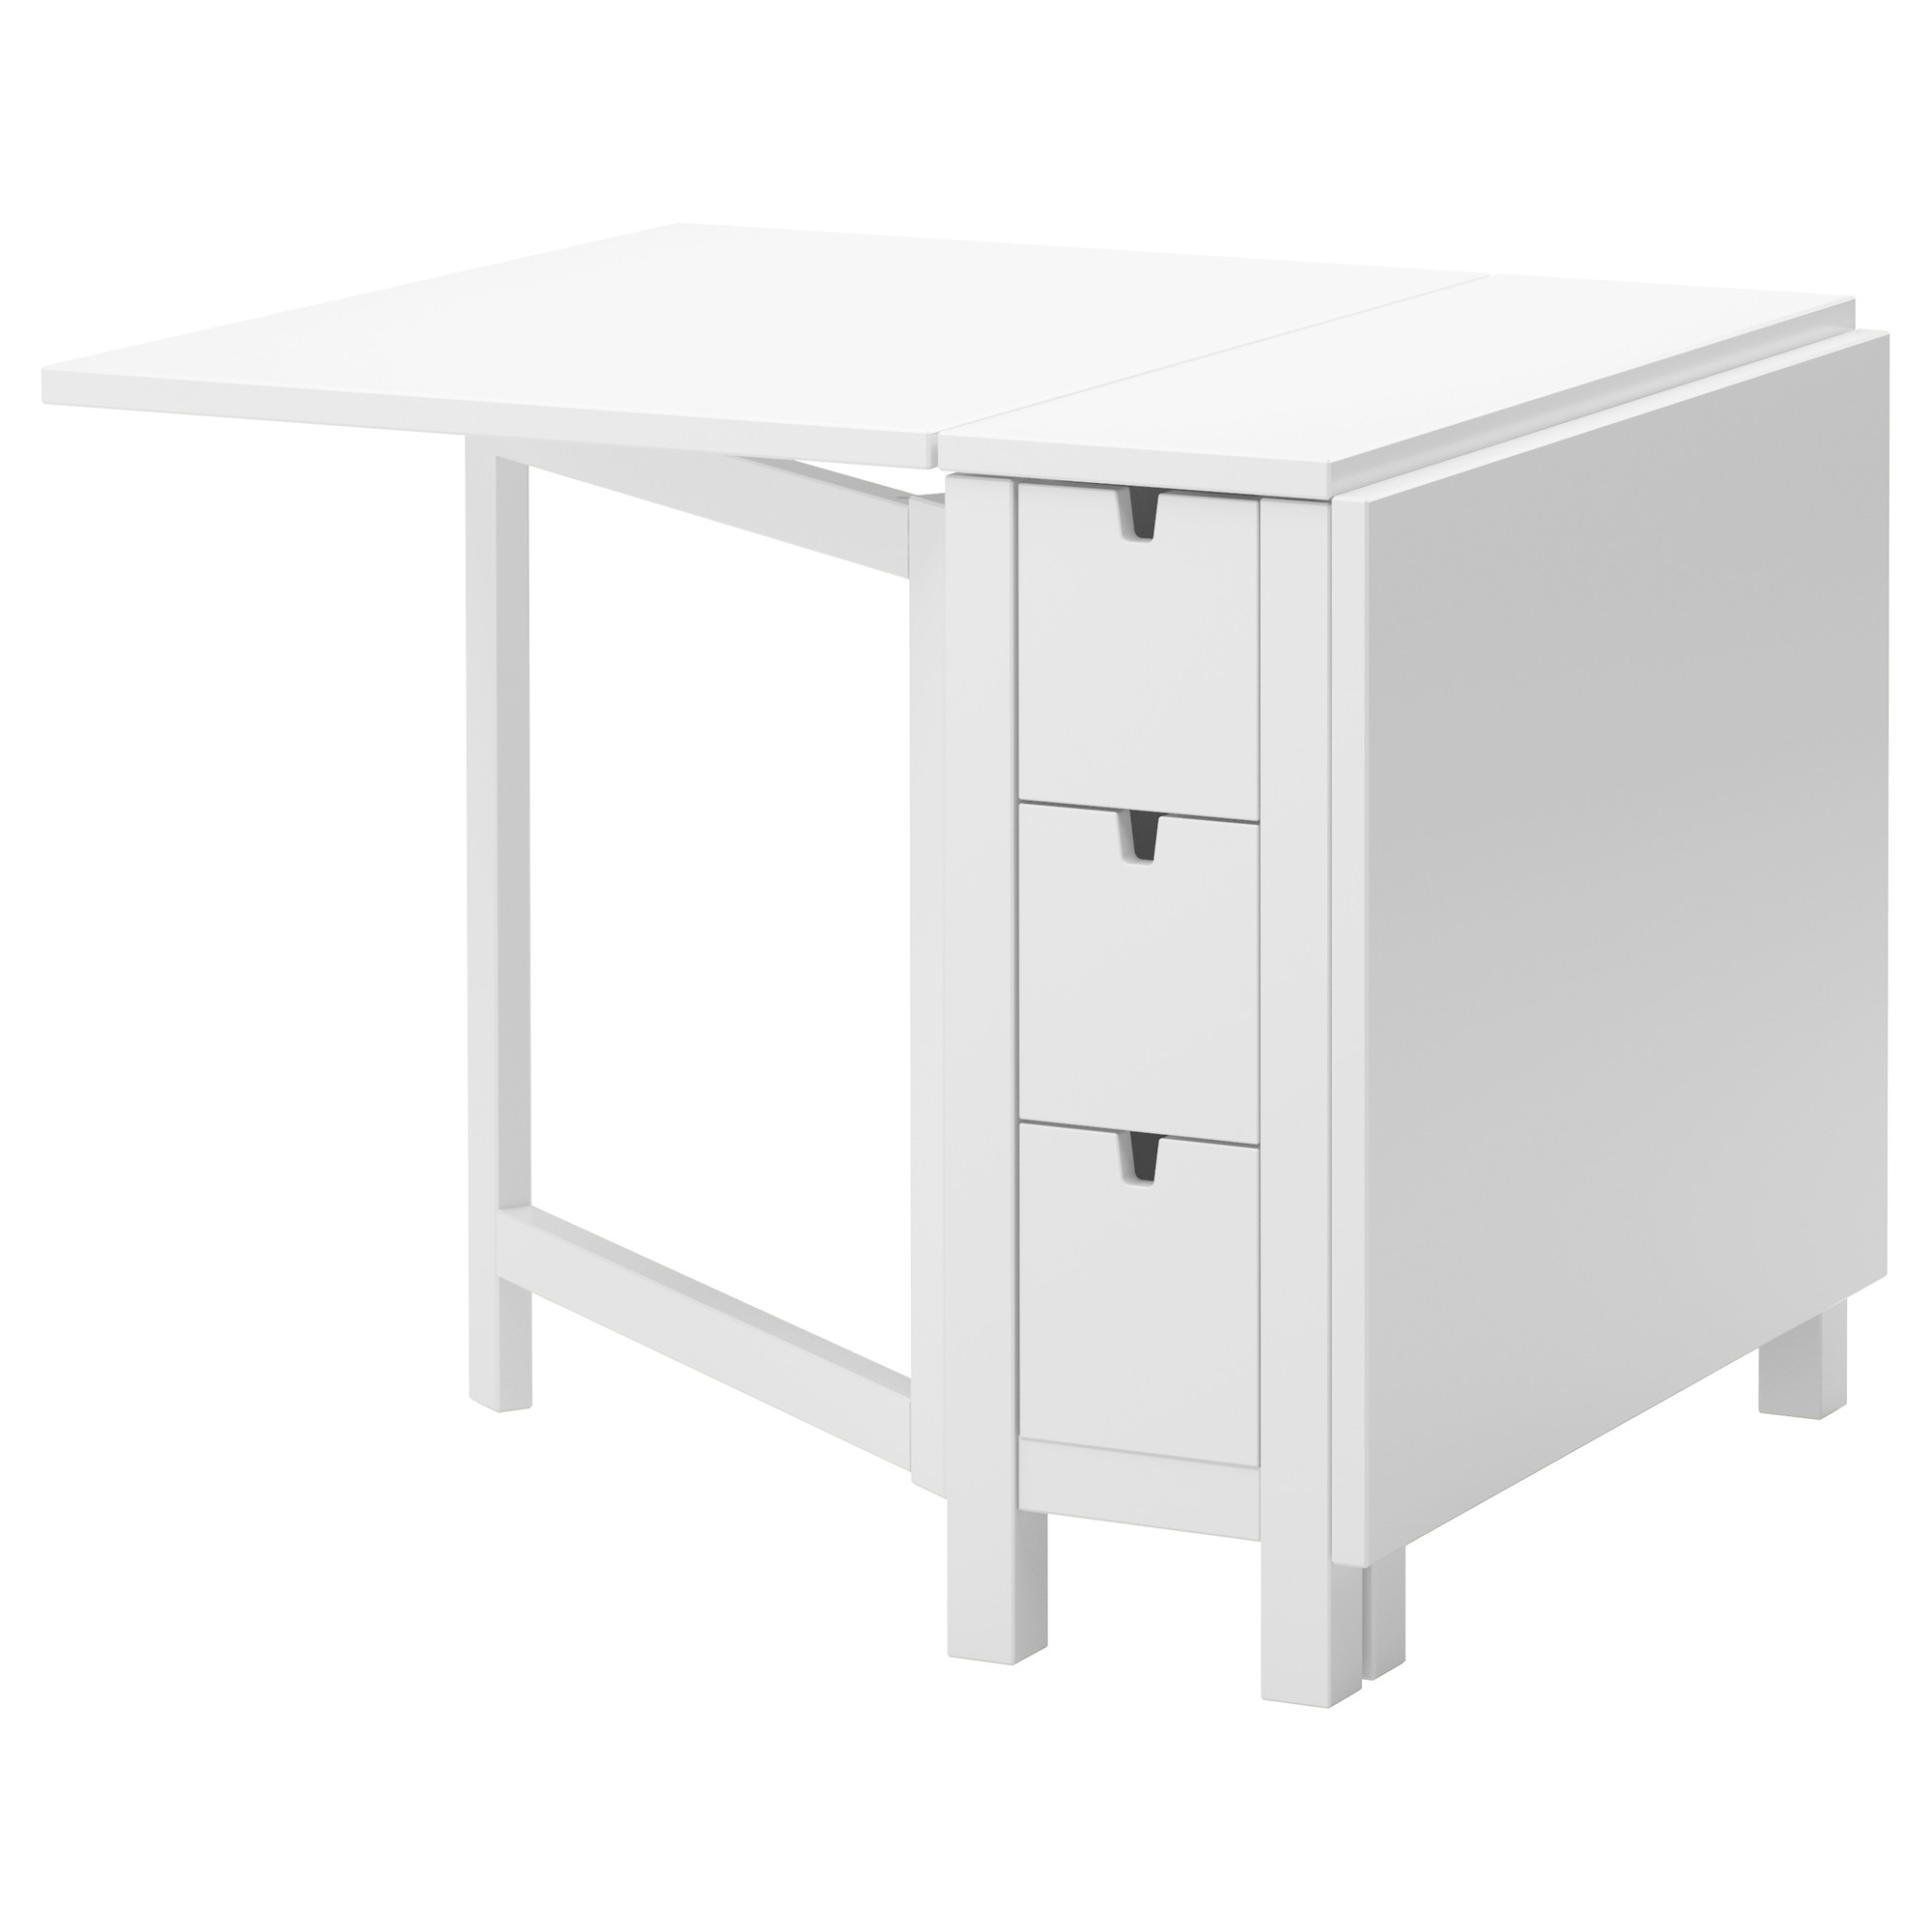 ikea small table design ideas corner and chairs accent tables square popular drop leaf end plans concrete patio coffee modern nightstand lights desk legs round side covers red